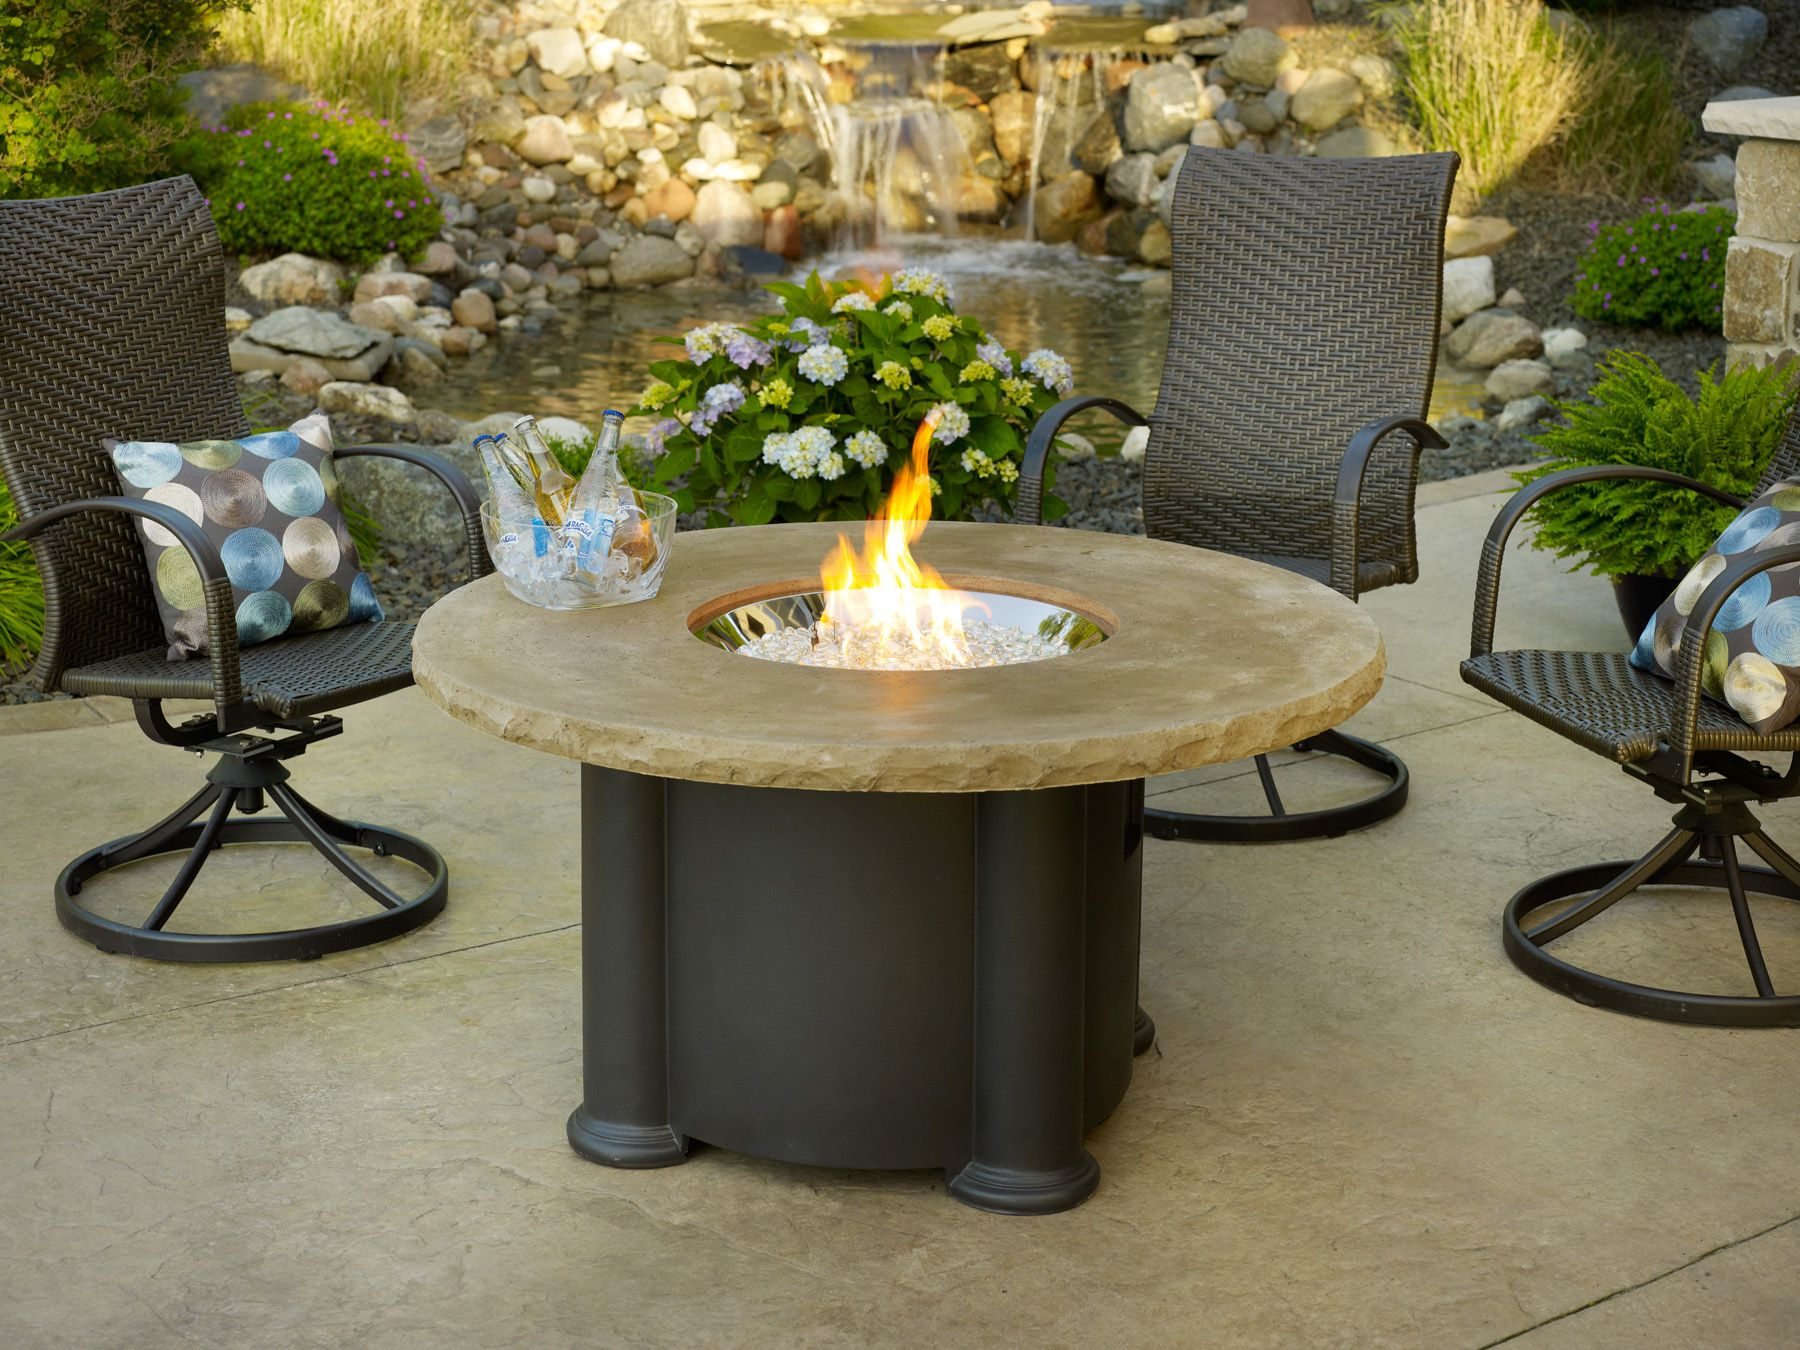 Bon Outdoor GreatRoom COLONIAL 48 M K | Colonial Round Fire Pit Table   Outdoor  Coffee Table In MOCHA | On Sale